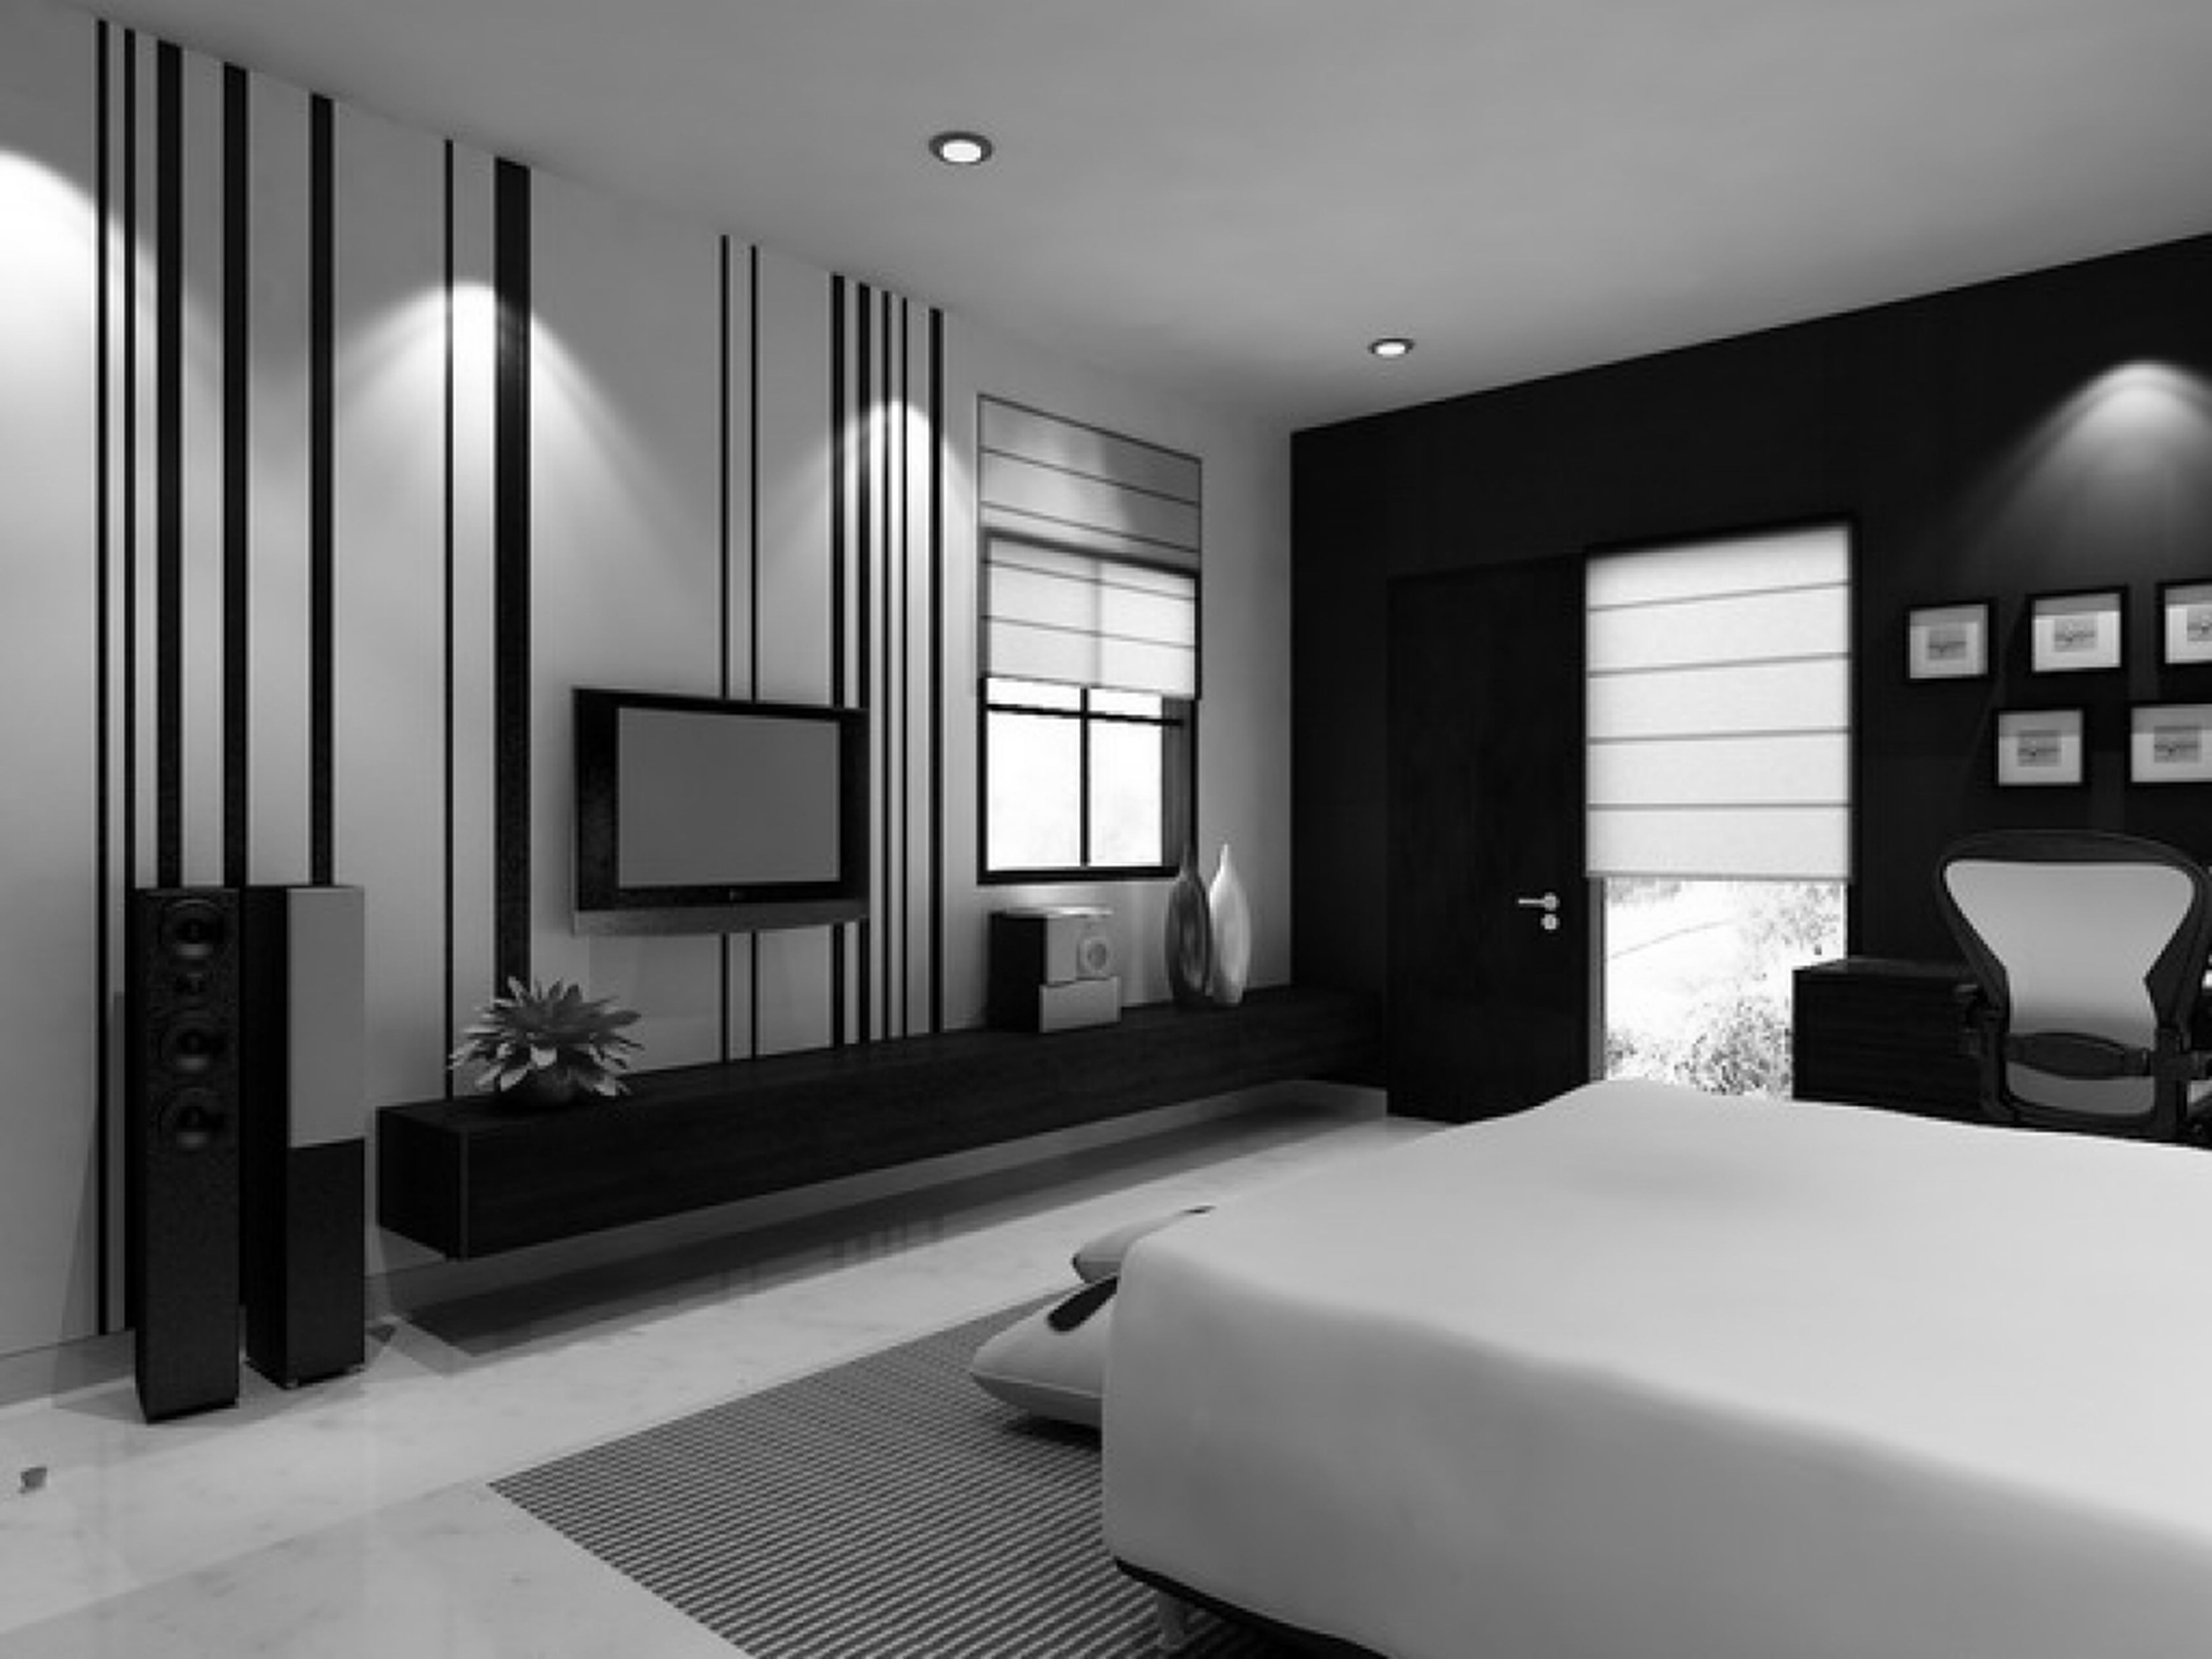 Black bedroom decor